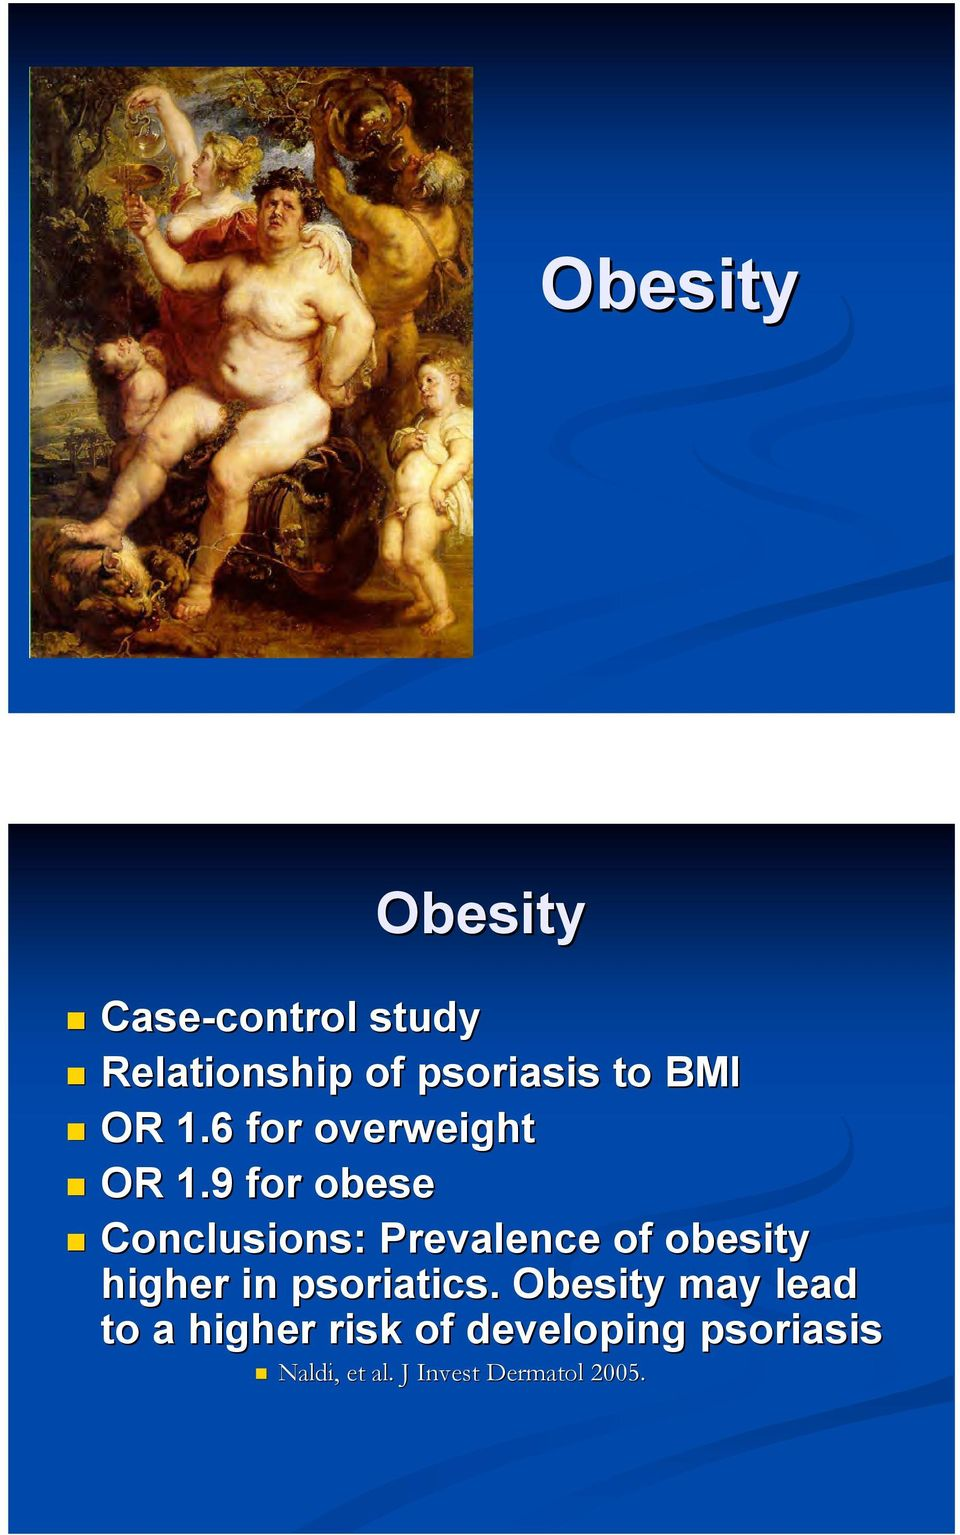 Conclusions: Prevalence of obesity higher in psoriatics.